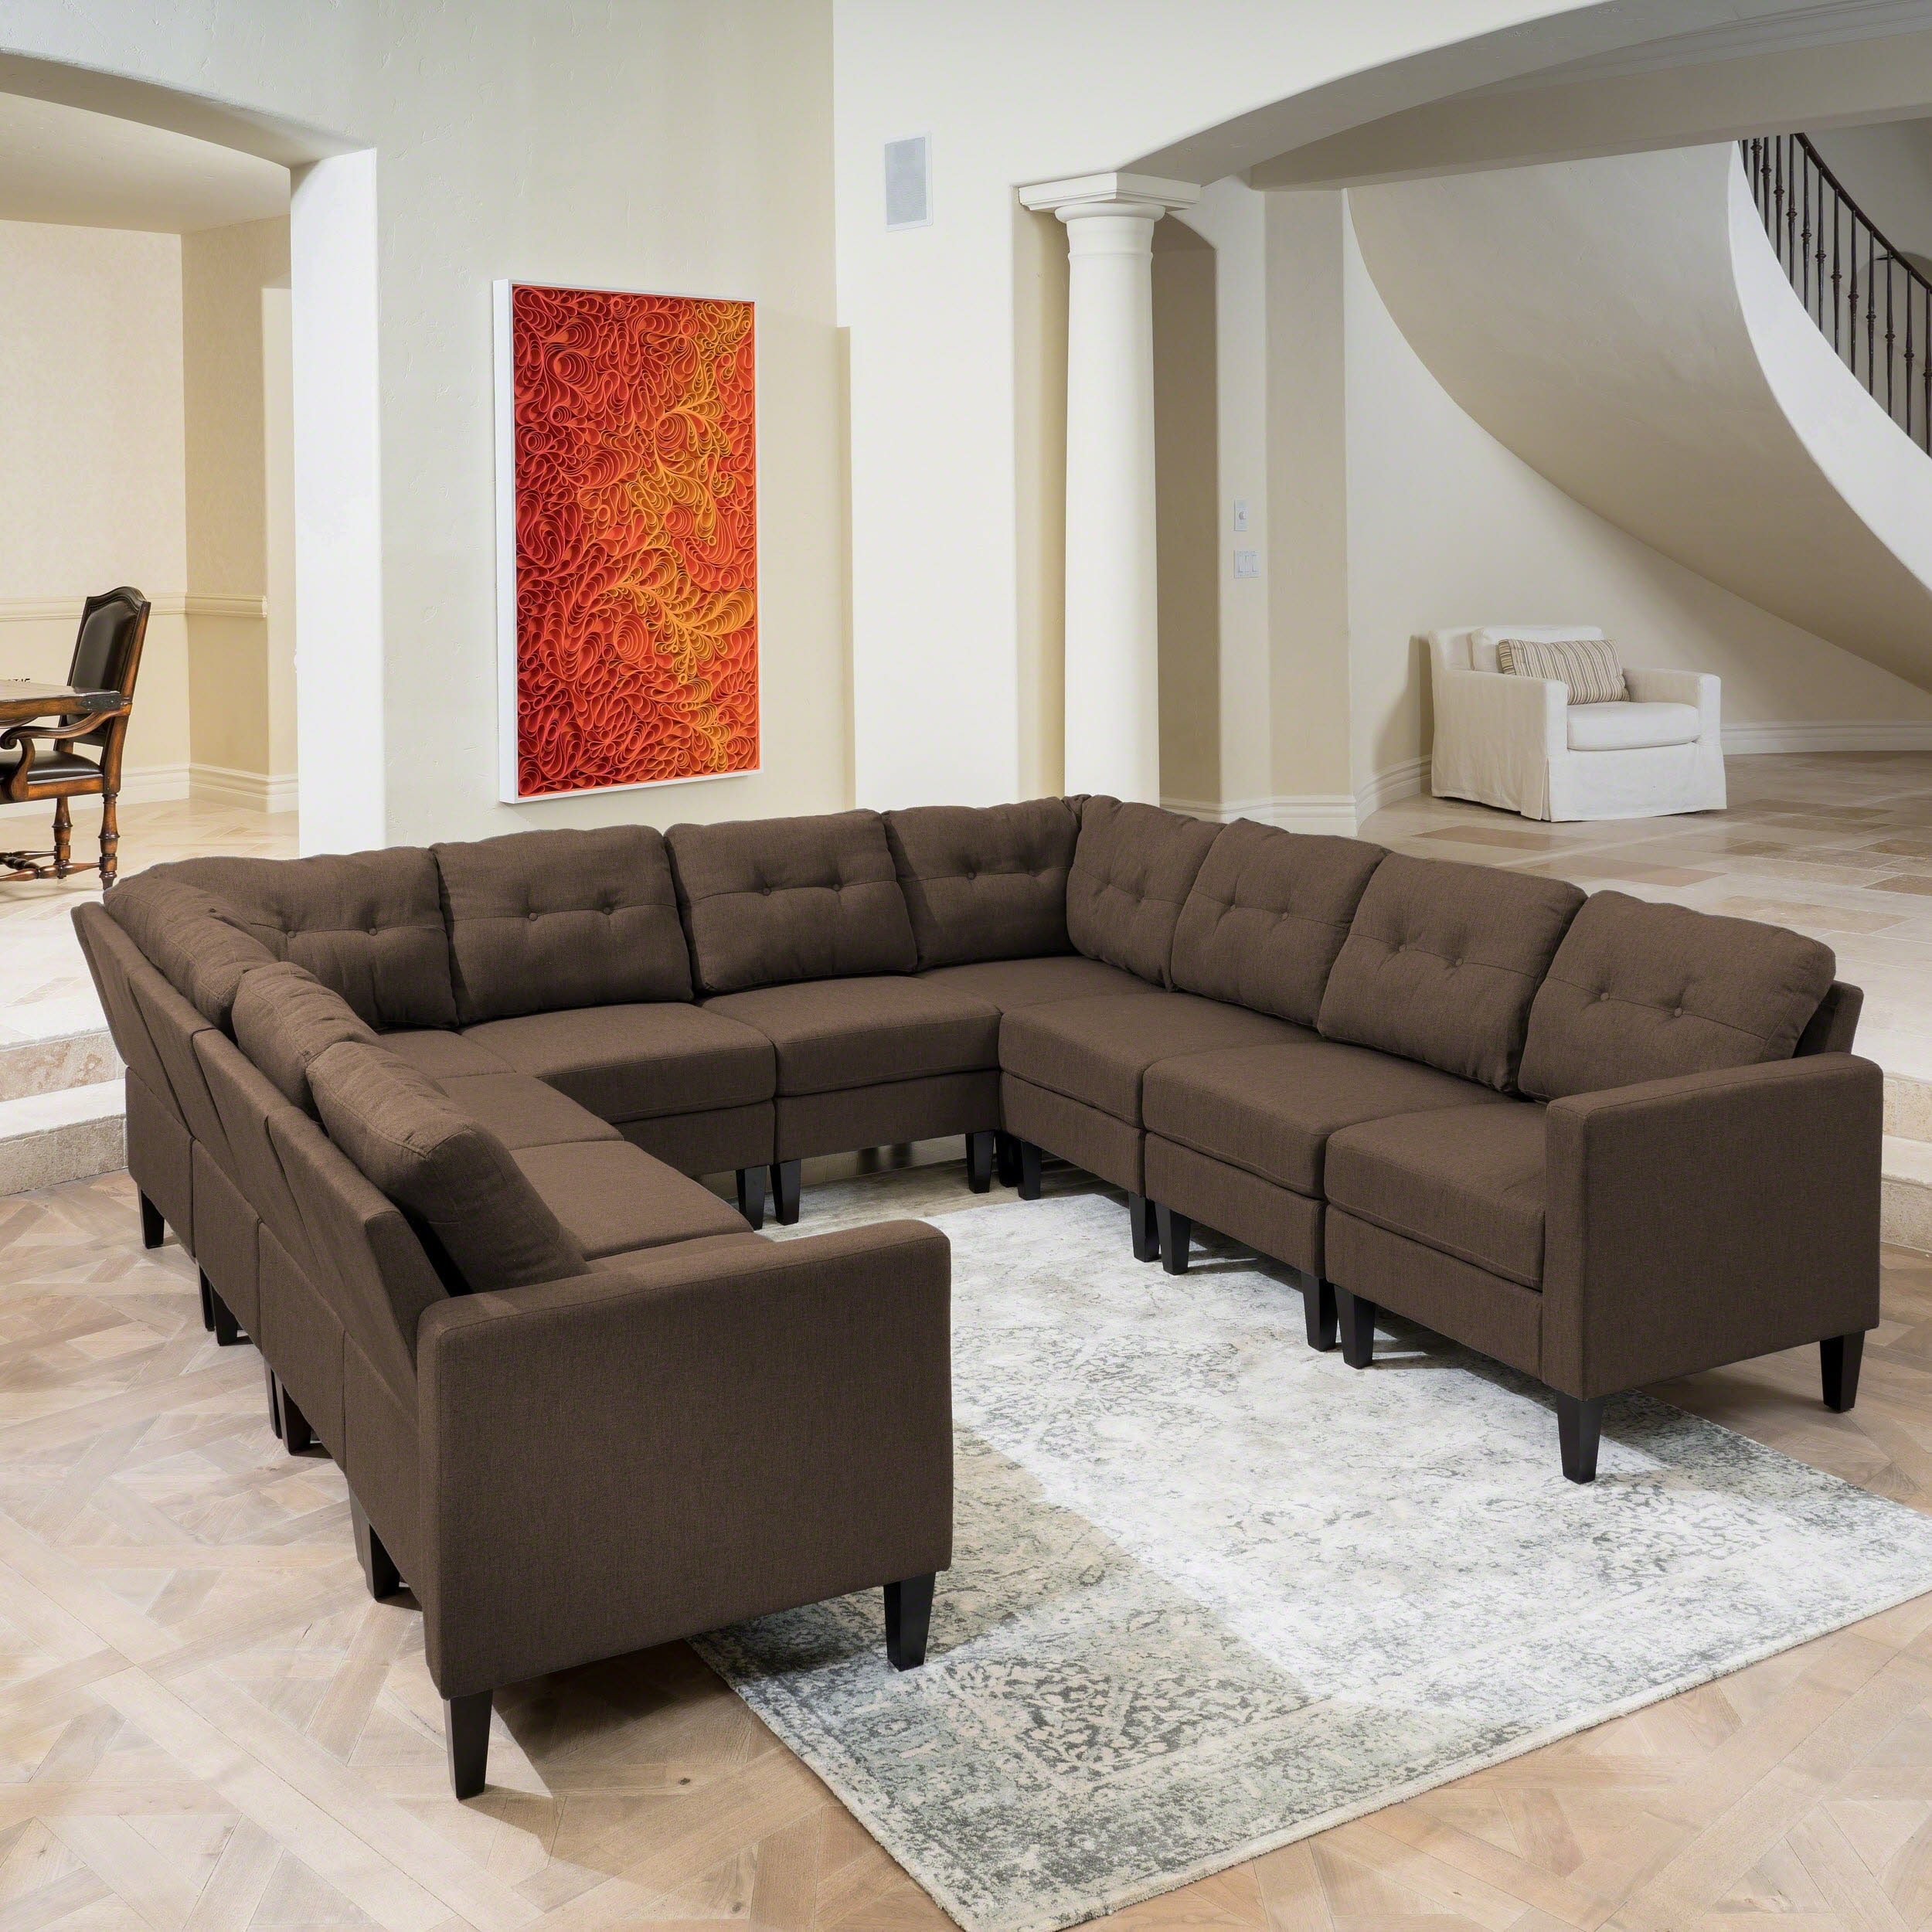 U Couch Emmie Mid Century Modern 10 Piece U Shaped Sectional Sofa Set By Christopher Knight Home